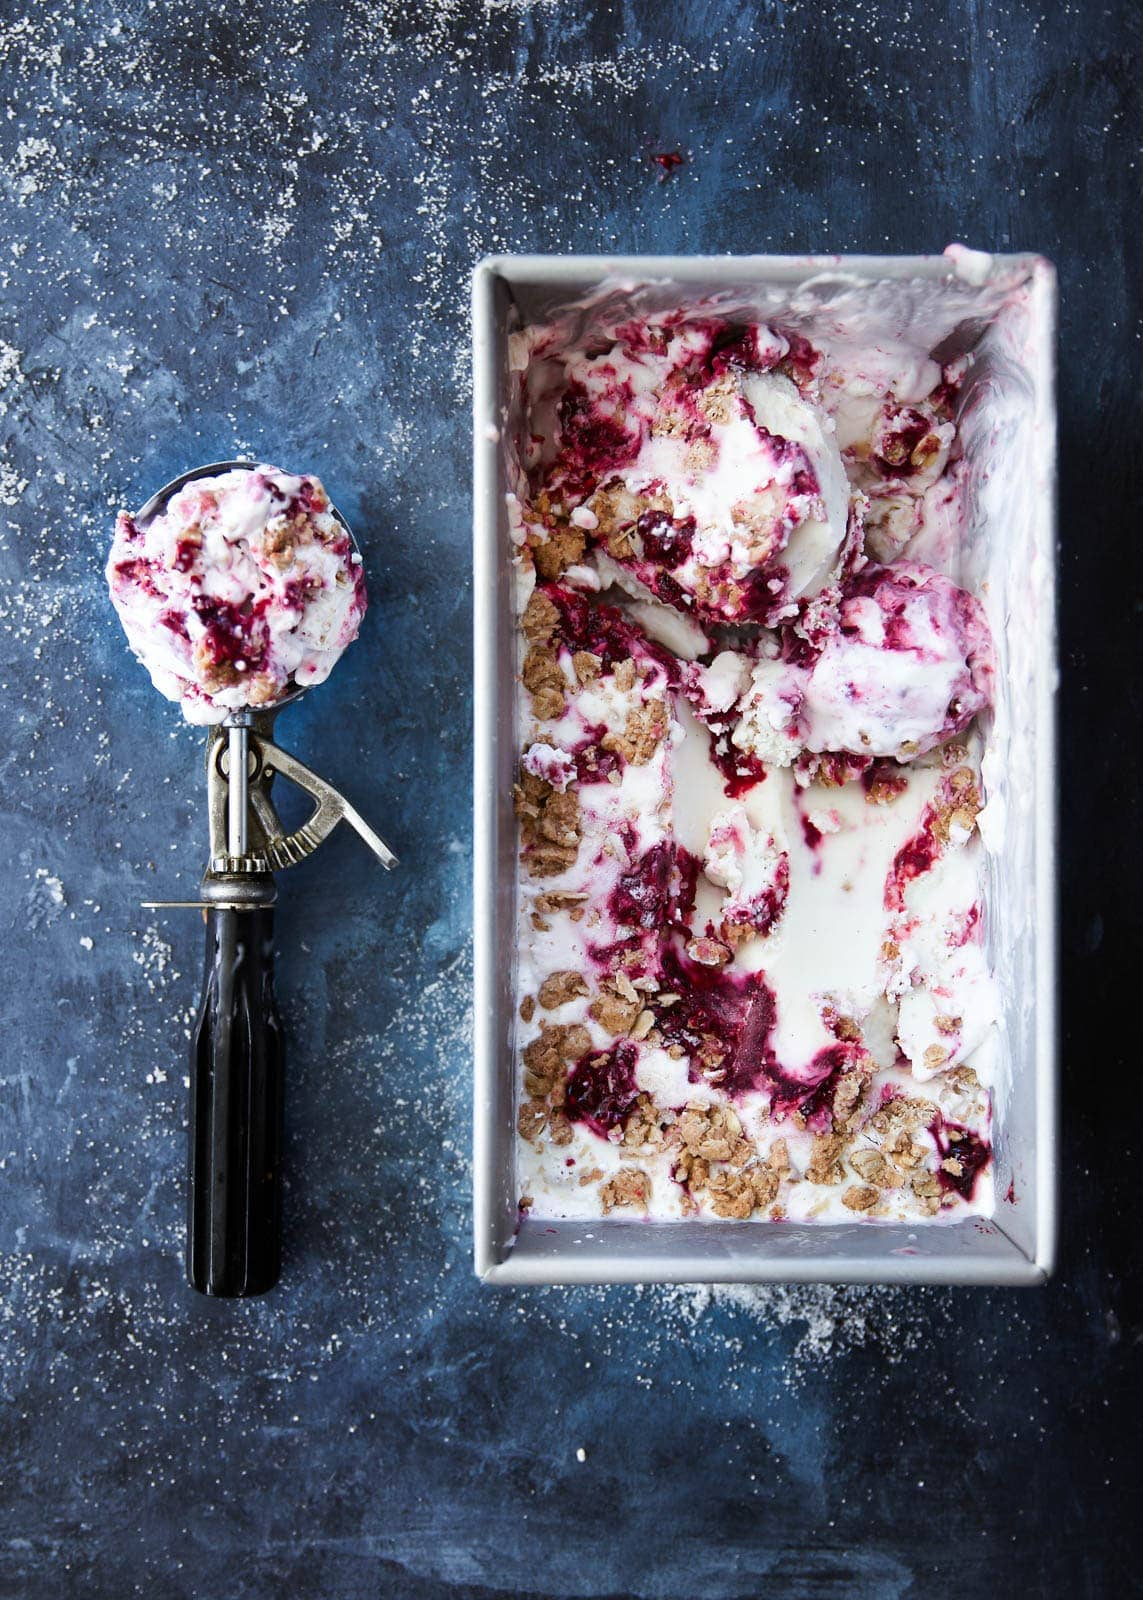 Gluten free Blackberry Crisp Frozen Yogurt that perfectly combines warm flavors in a tangy frozen yogurt